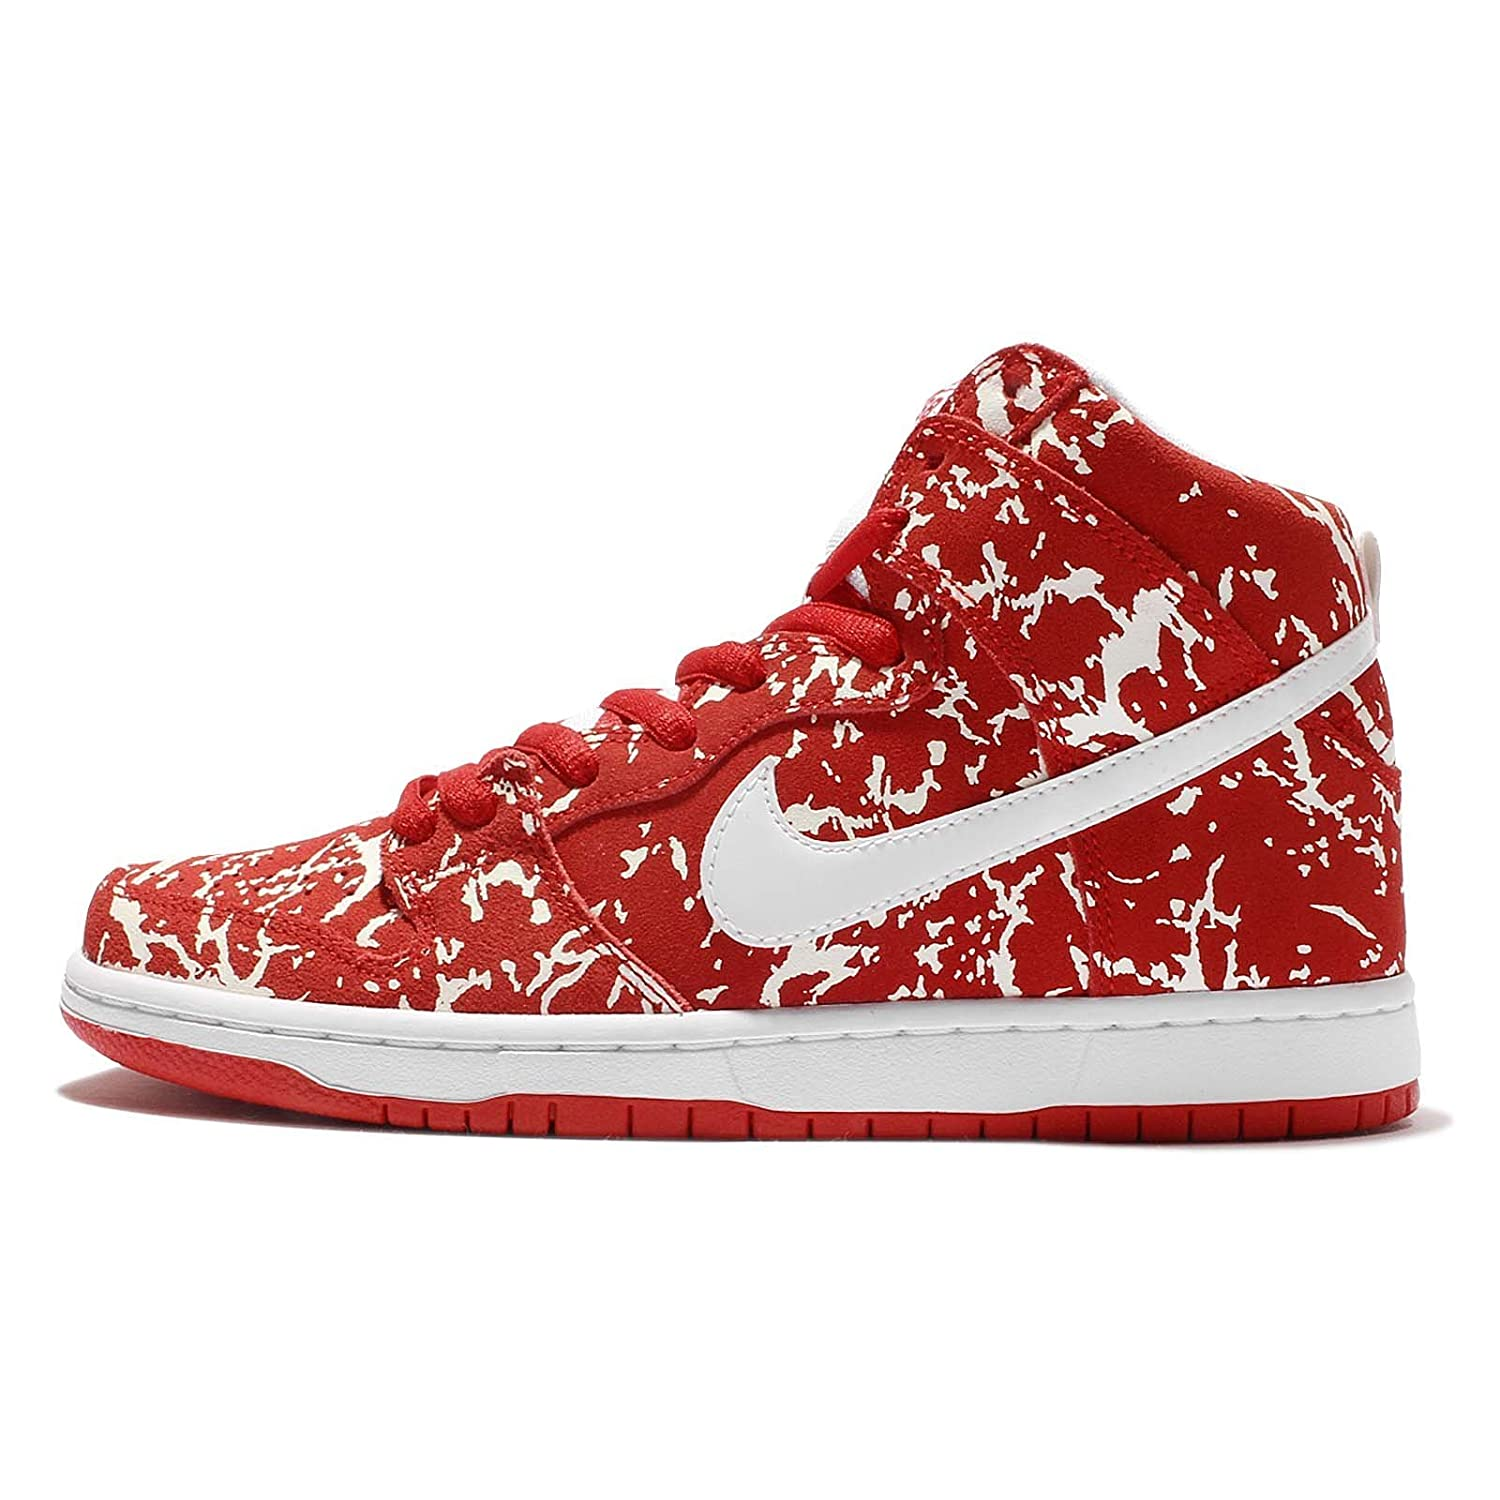 size 40 preview of stable quality Nike Mens Dunk High SB, RAW Meat-Challenge RED/White-Chllng RED, 9 ...